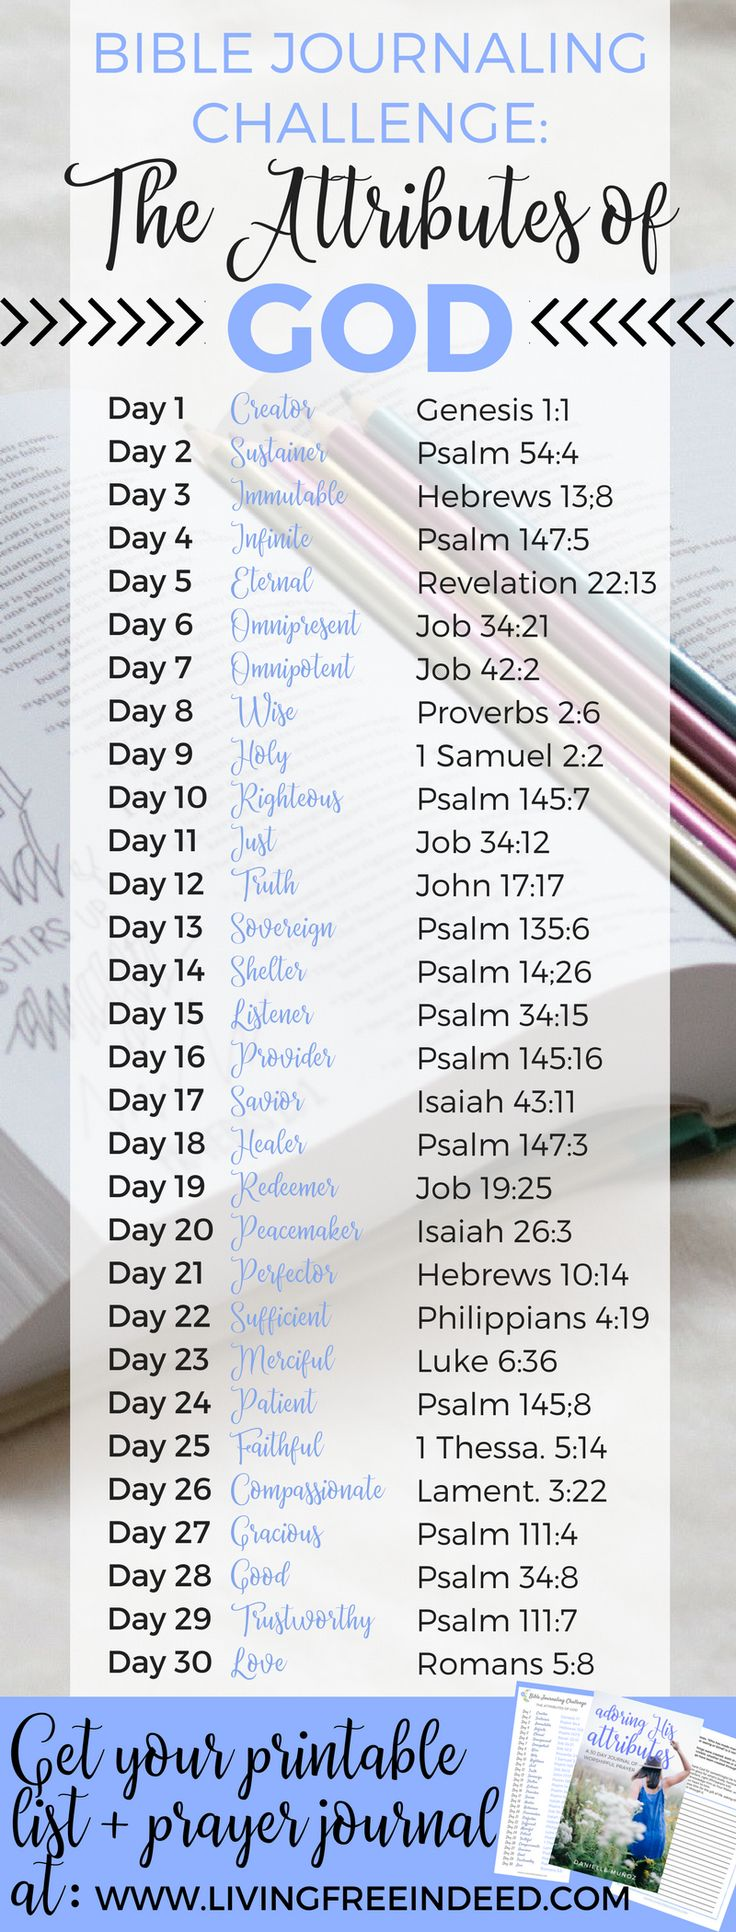 For the next 30 days join me in prayerfully praising God, simply for who He is. This is an opportunity to come to God's feet in worship of His marvelous character. | Attributes of God | Knowing God | Who is God | Jesus Christ | What Is God Like | Bible Journaling Plans | Scripture Reading Plans | Bible Verses About God